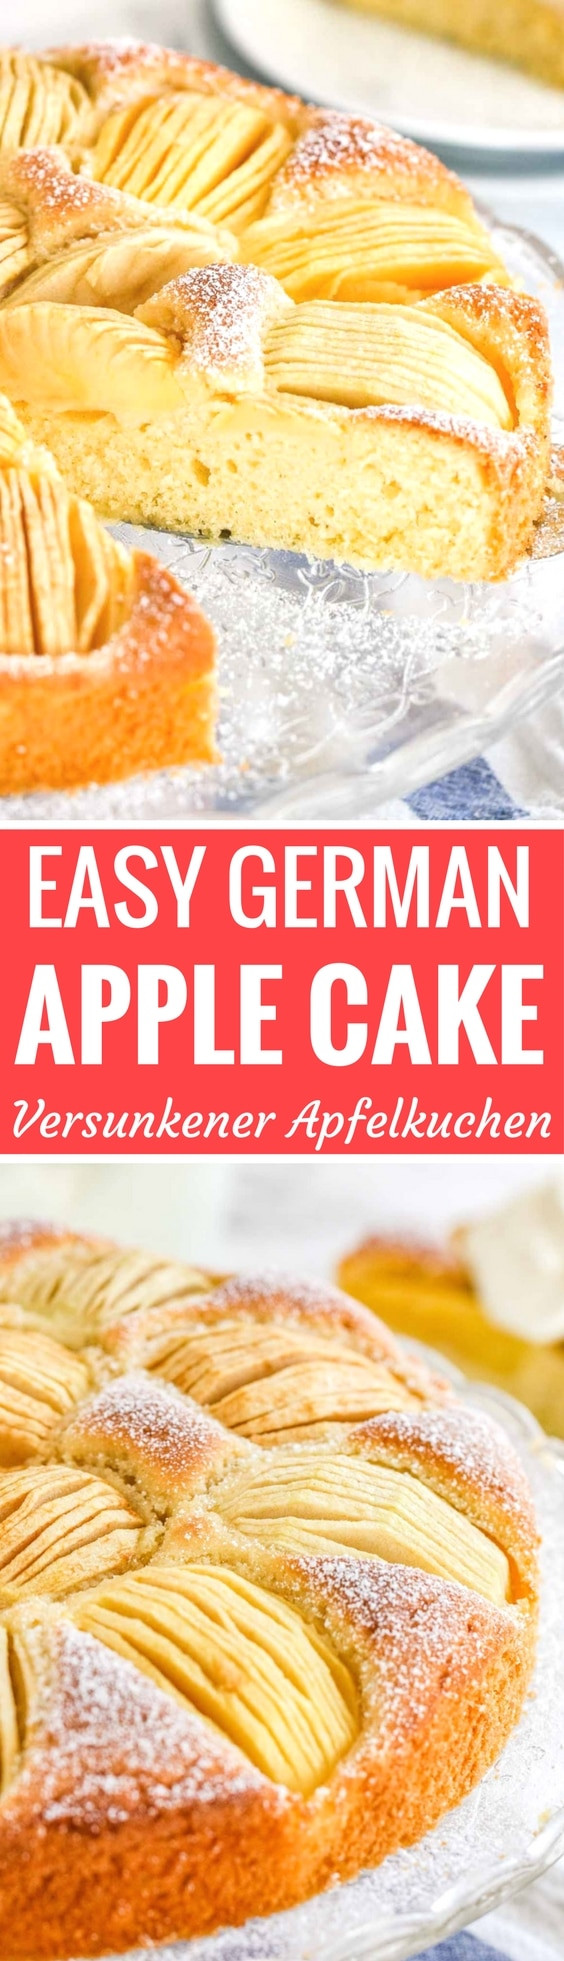 German Apple Cake (Versunkener Apfelkuchen) is a traditional German cake that is so easy to make even if you aren't totally kitchen confident! With a simple batter that rises up and bakes around the apples this easy coffee cake is the perfect fall dessert that tastes best with a dollop of whipped cream on top.